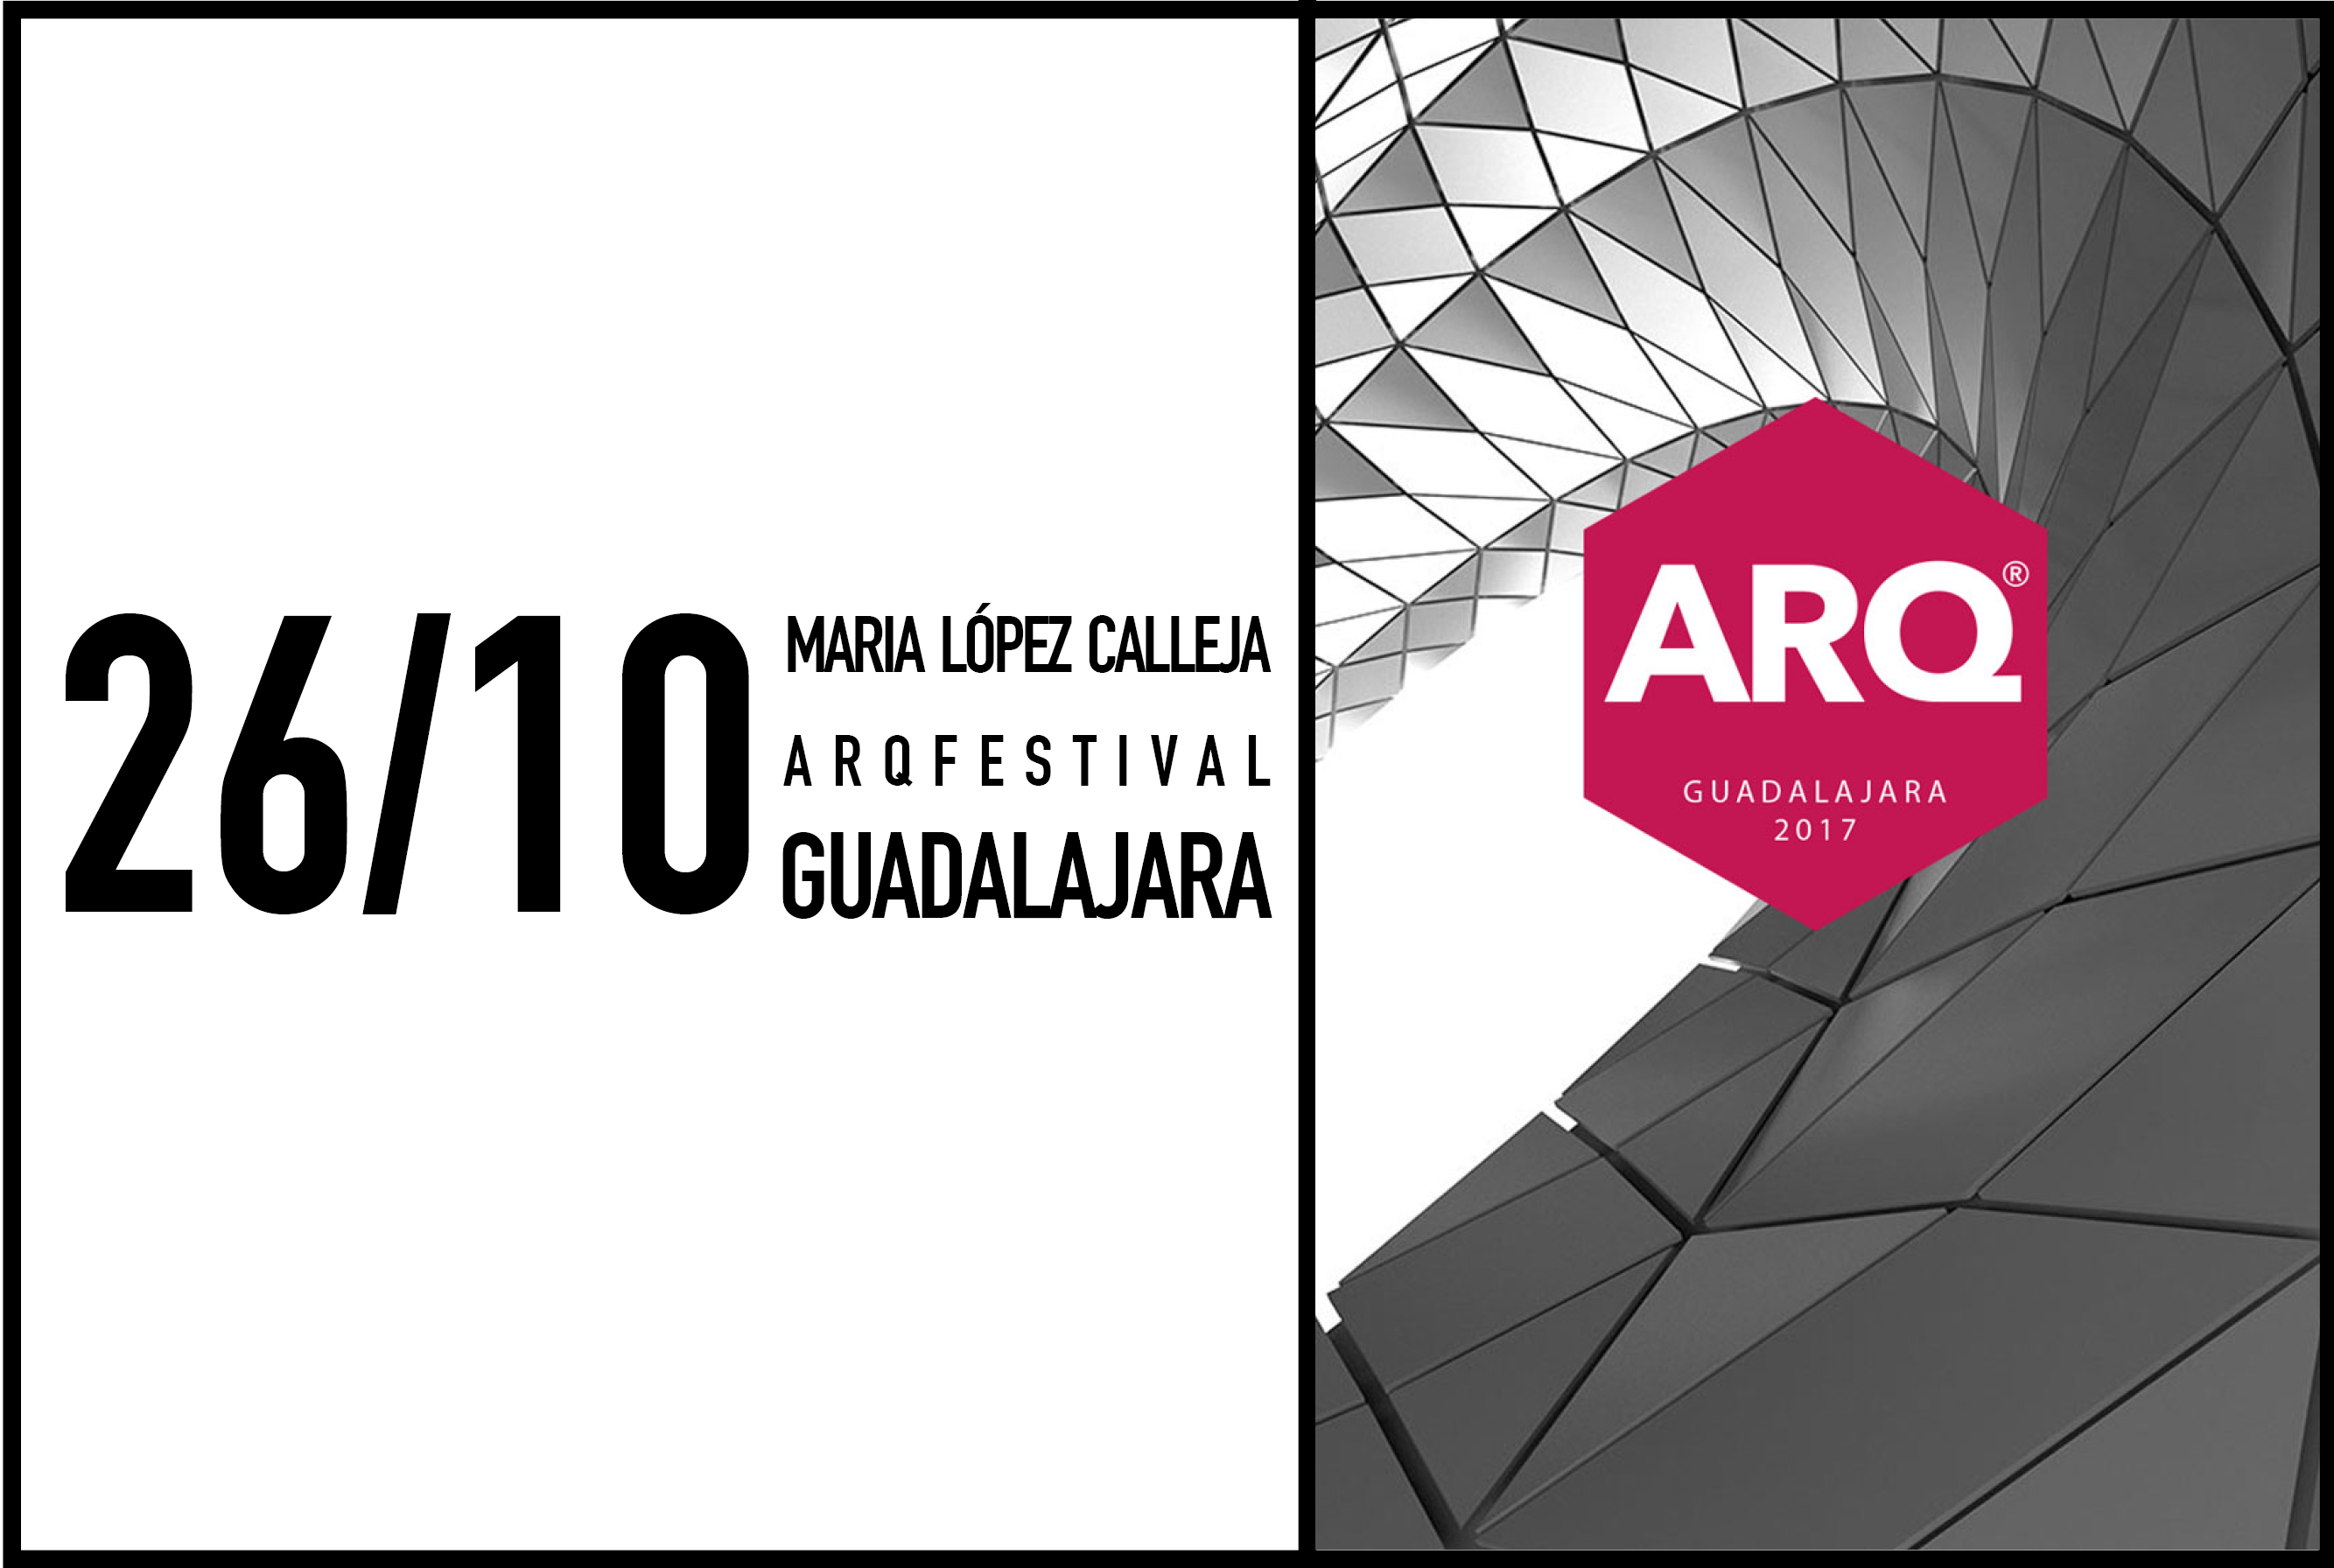 Maria López Calleja to be speaking at Arq Festival Guadalajara, Mexico, 26 October 2017